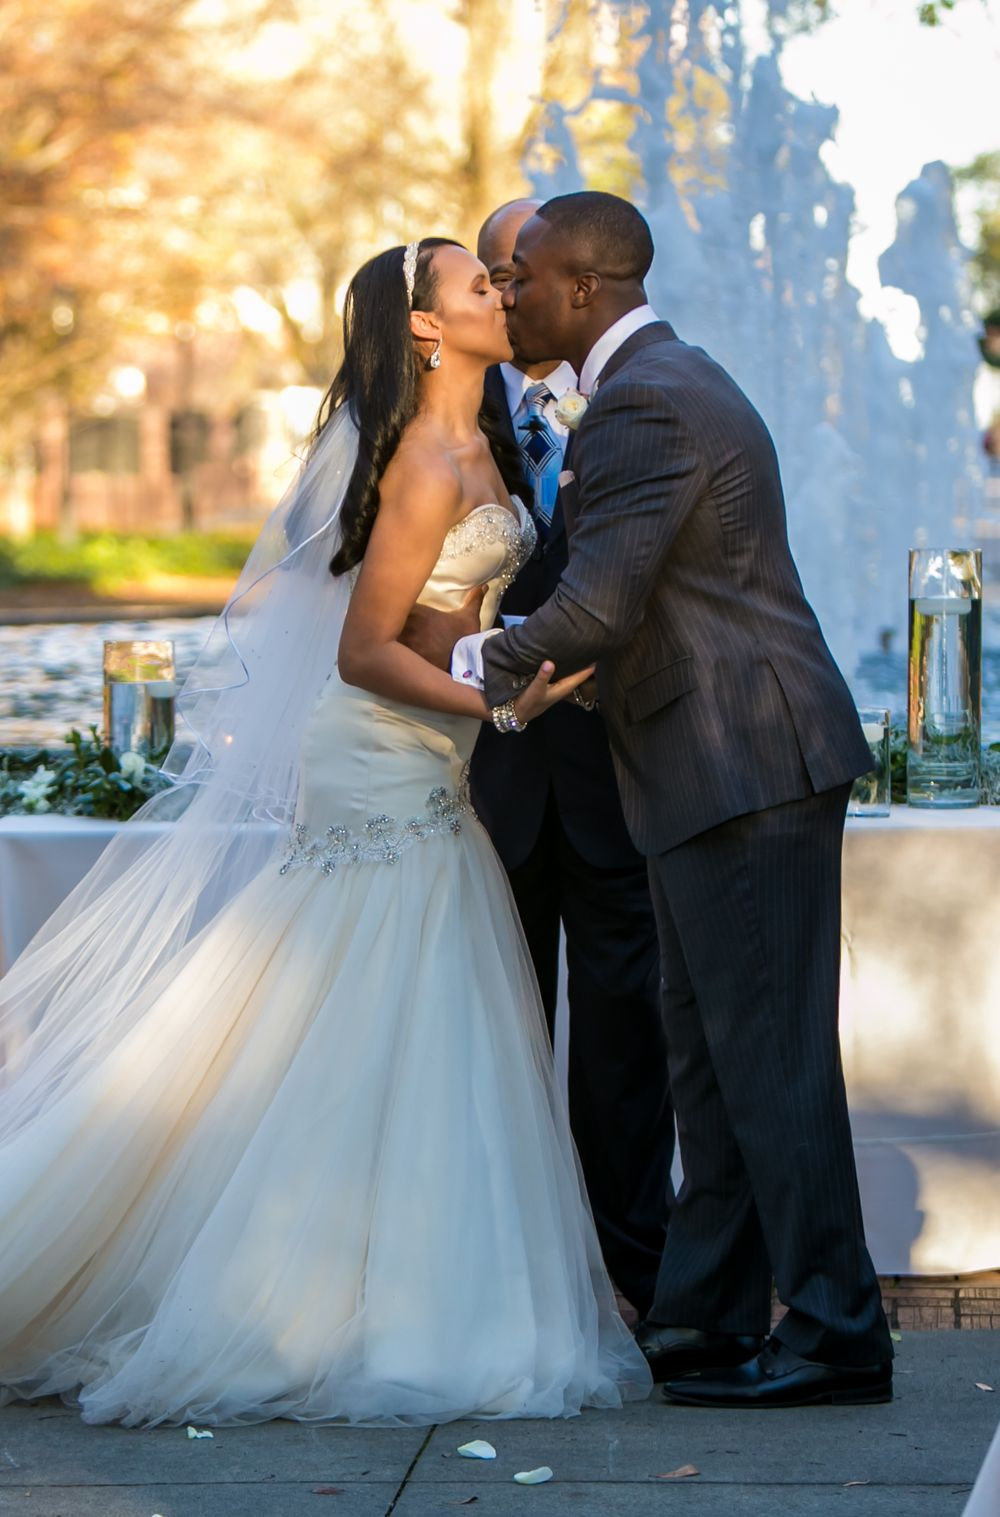 Miranda and Marcus Lattimore's first kiss during their wedding ceremony at the Lace House in Columbia, SC. Ph